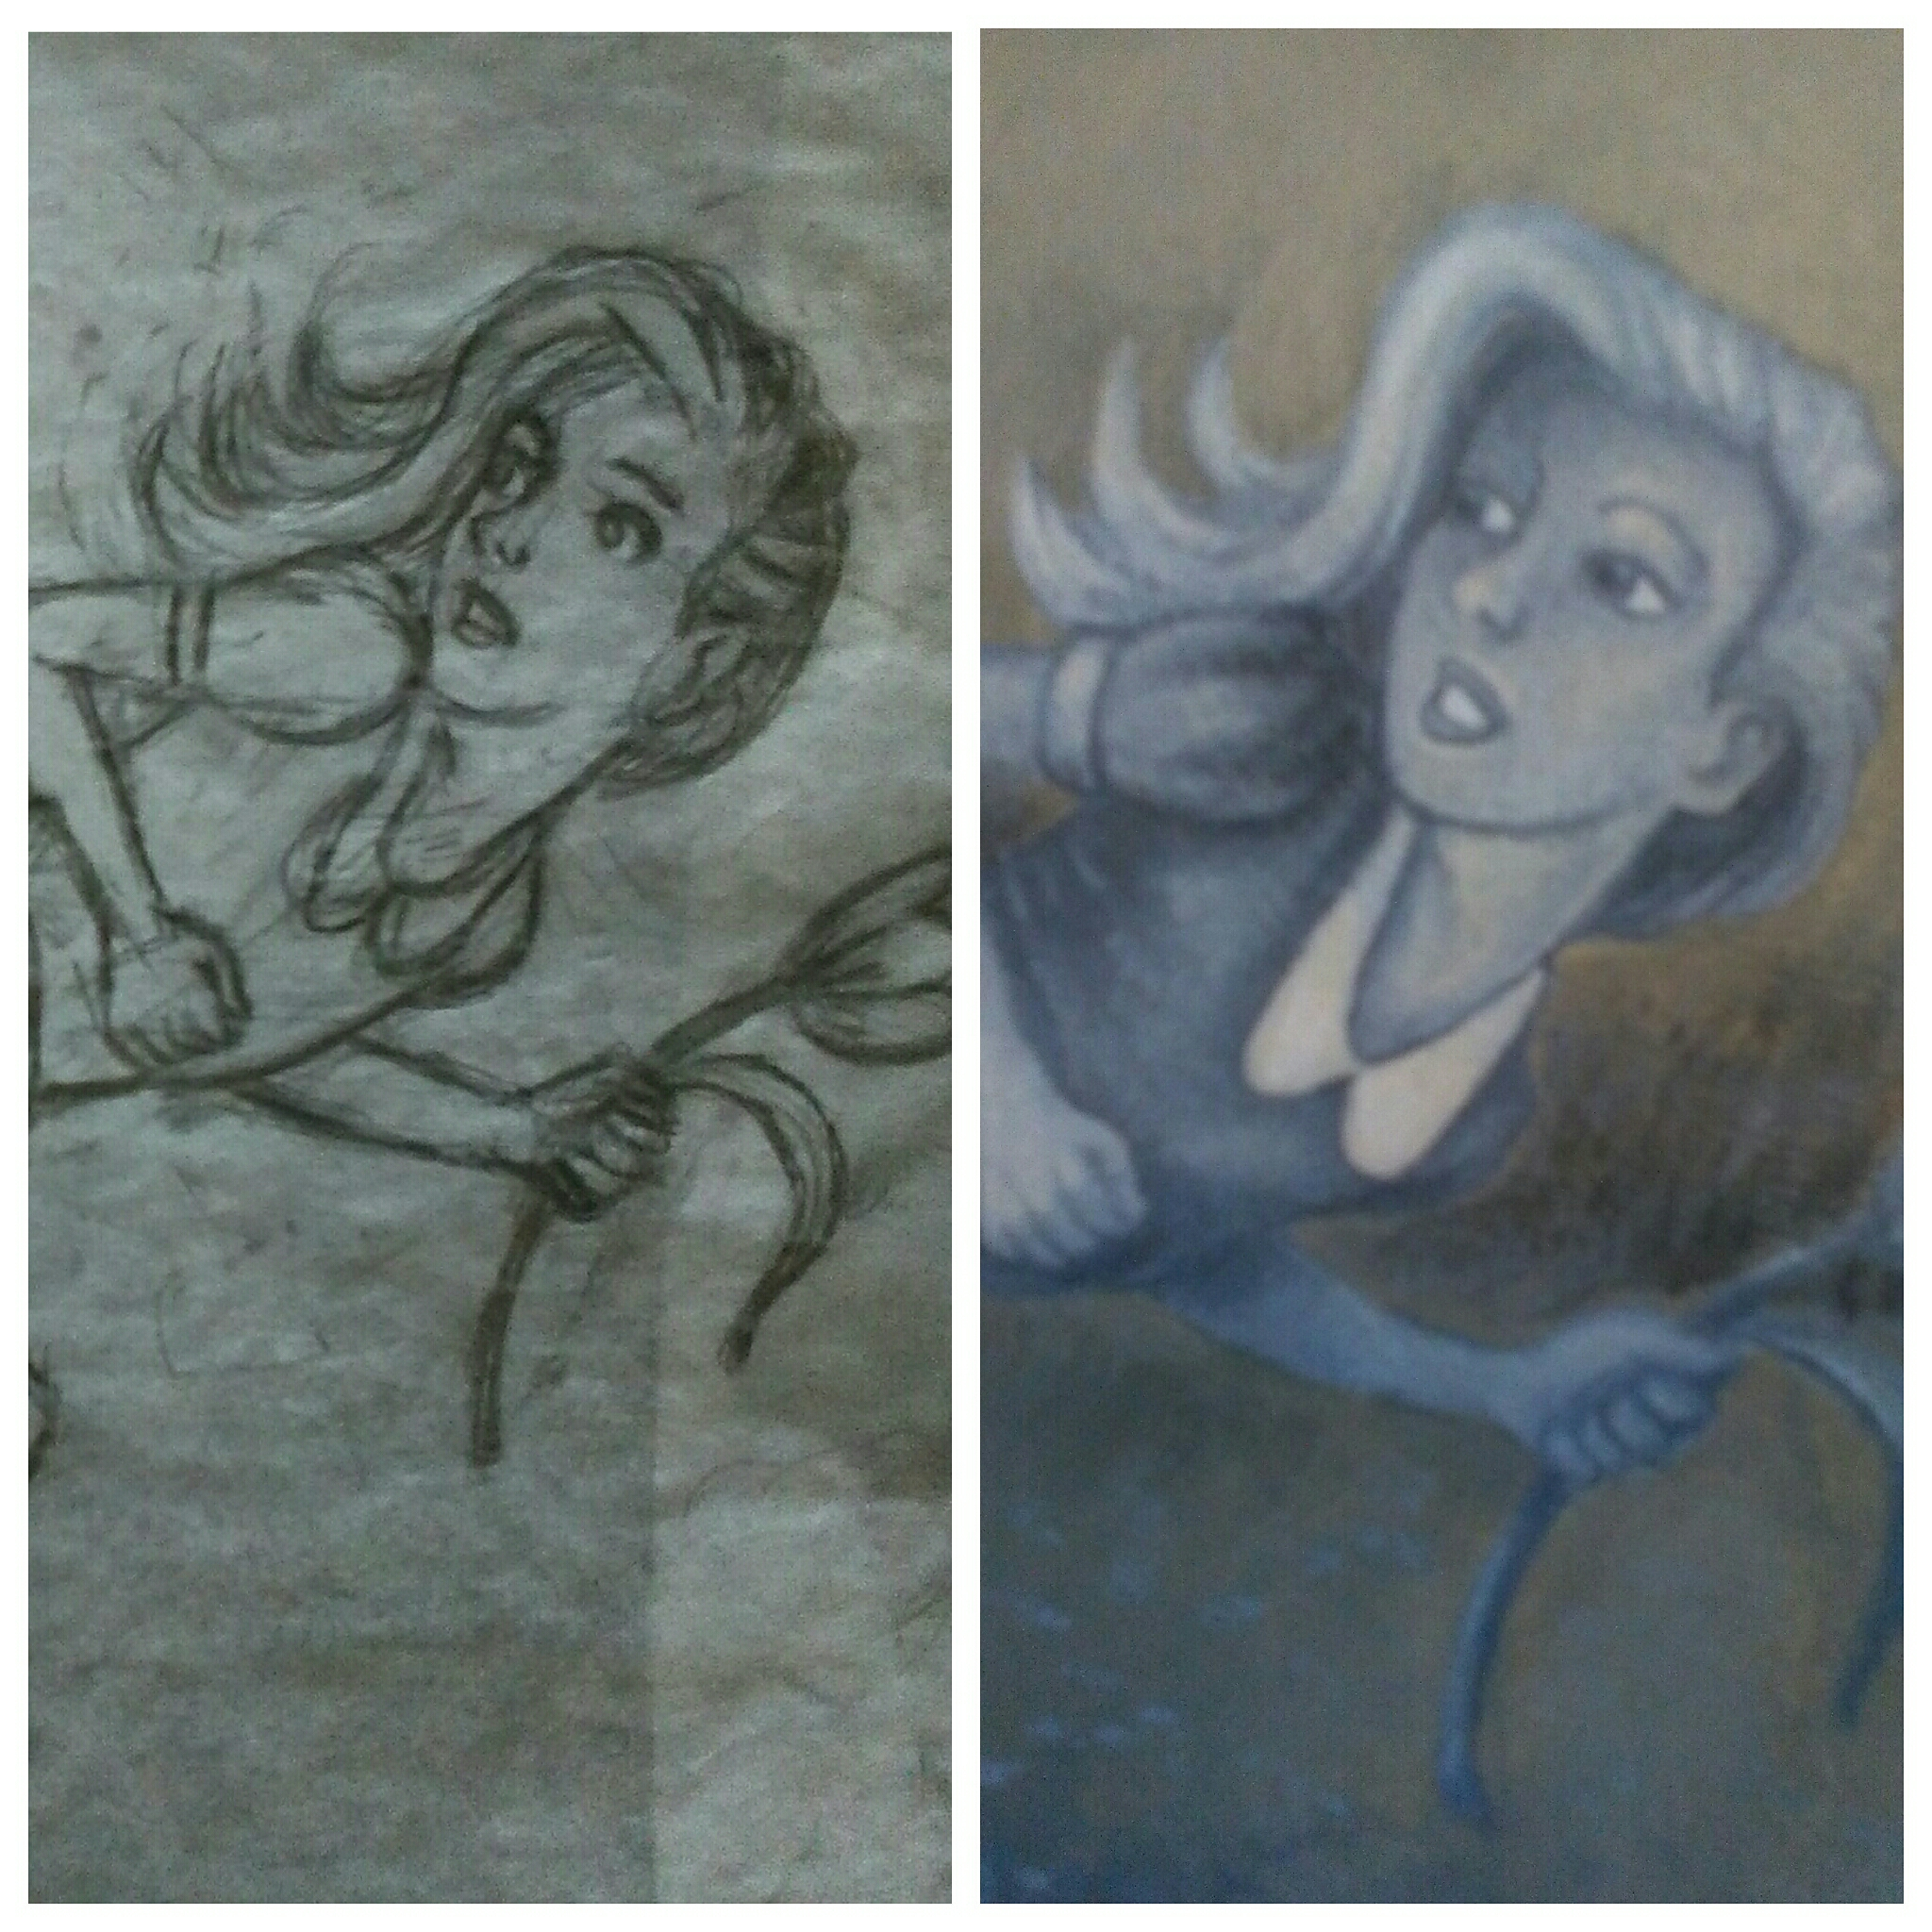 The sketch and the painting of the little girl.